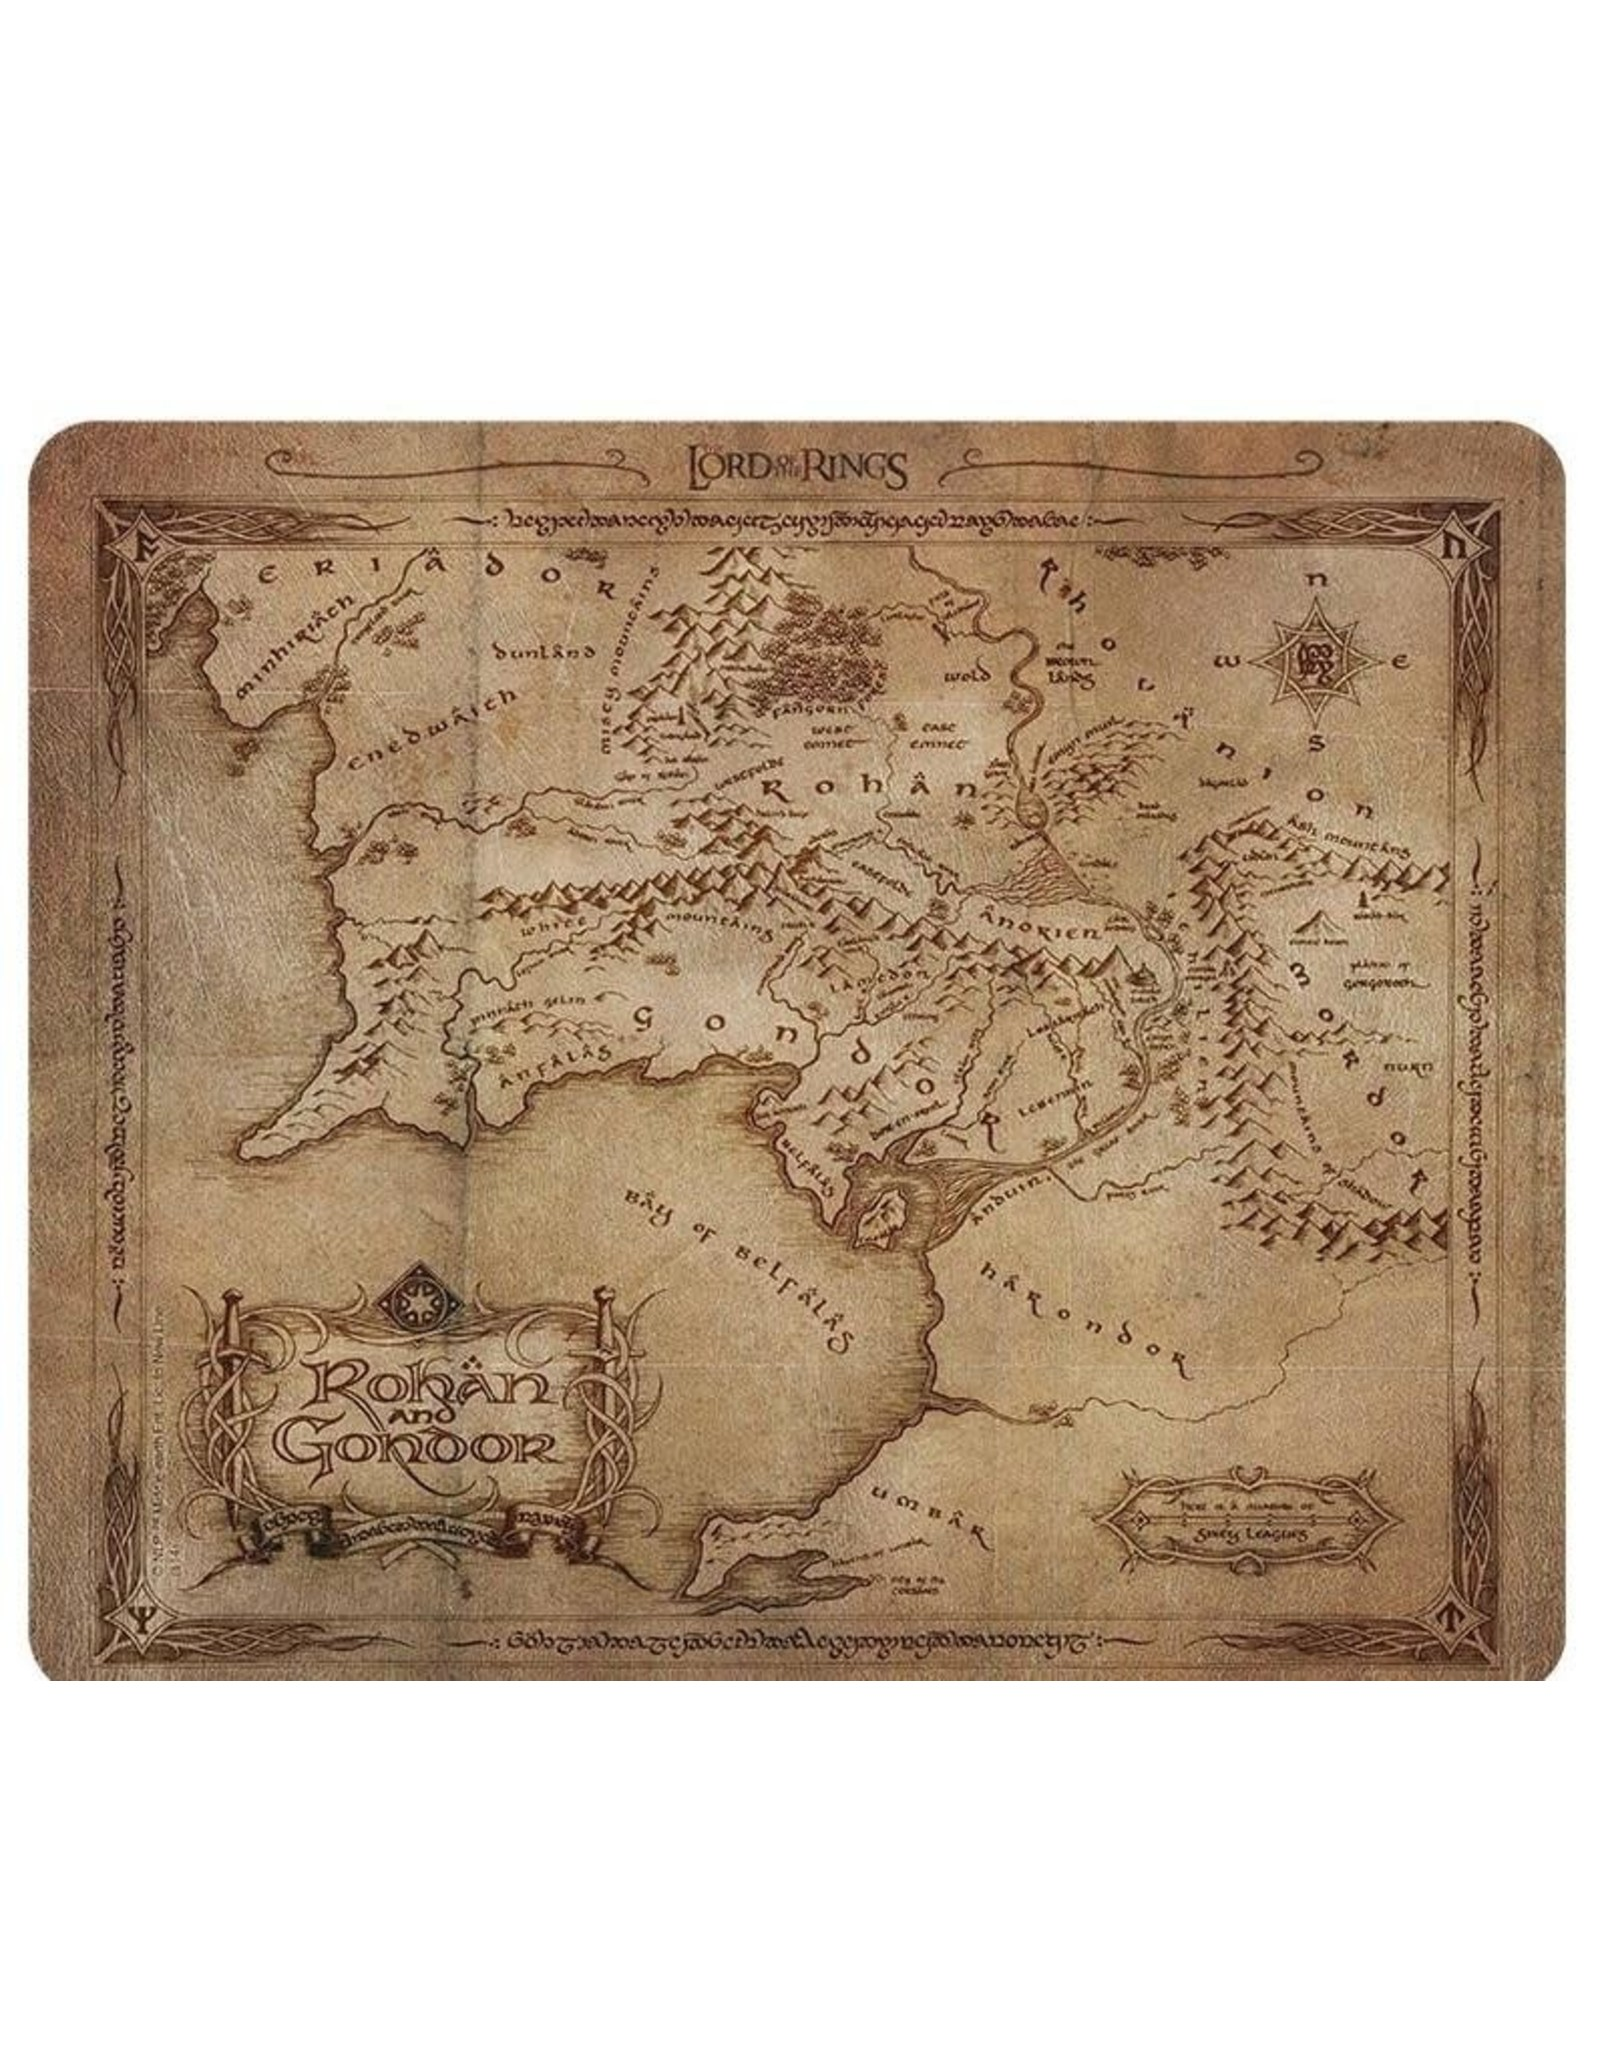 LORD OF THE RINGS Mouse Pad - Rohan & Gondor